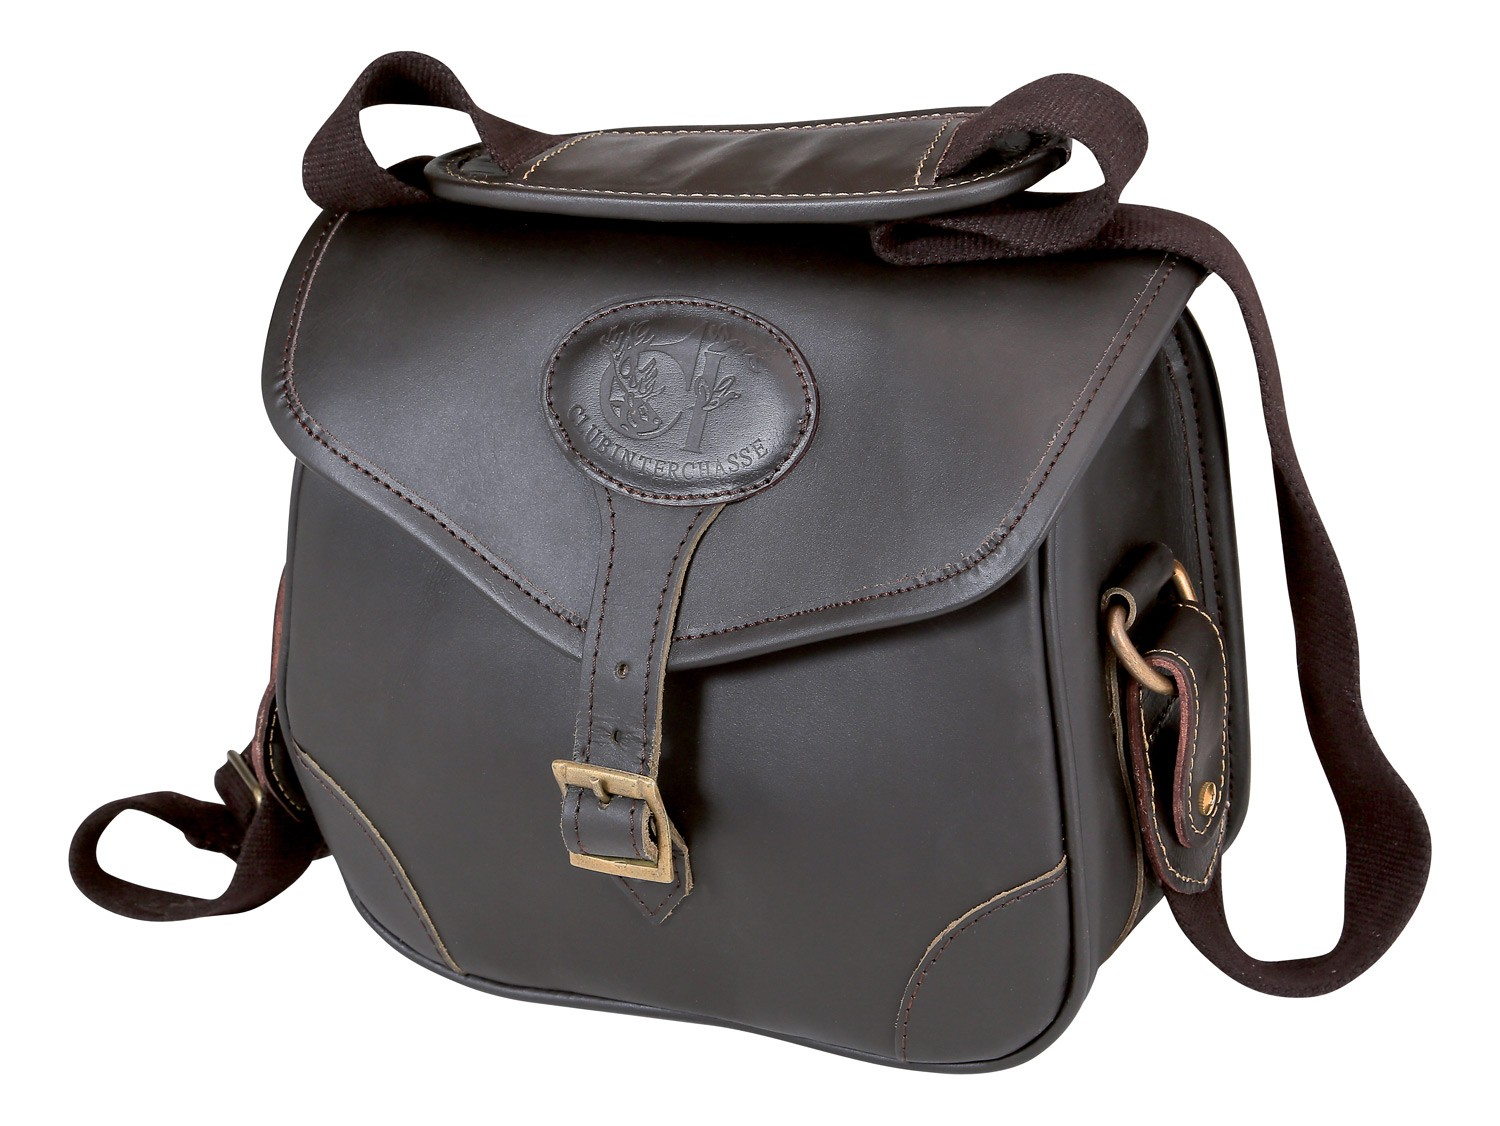 Sac à cartouches cuir club interchasse andy, made in chas...